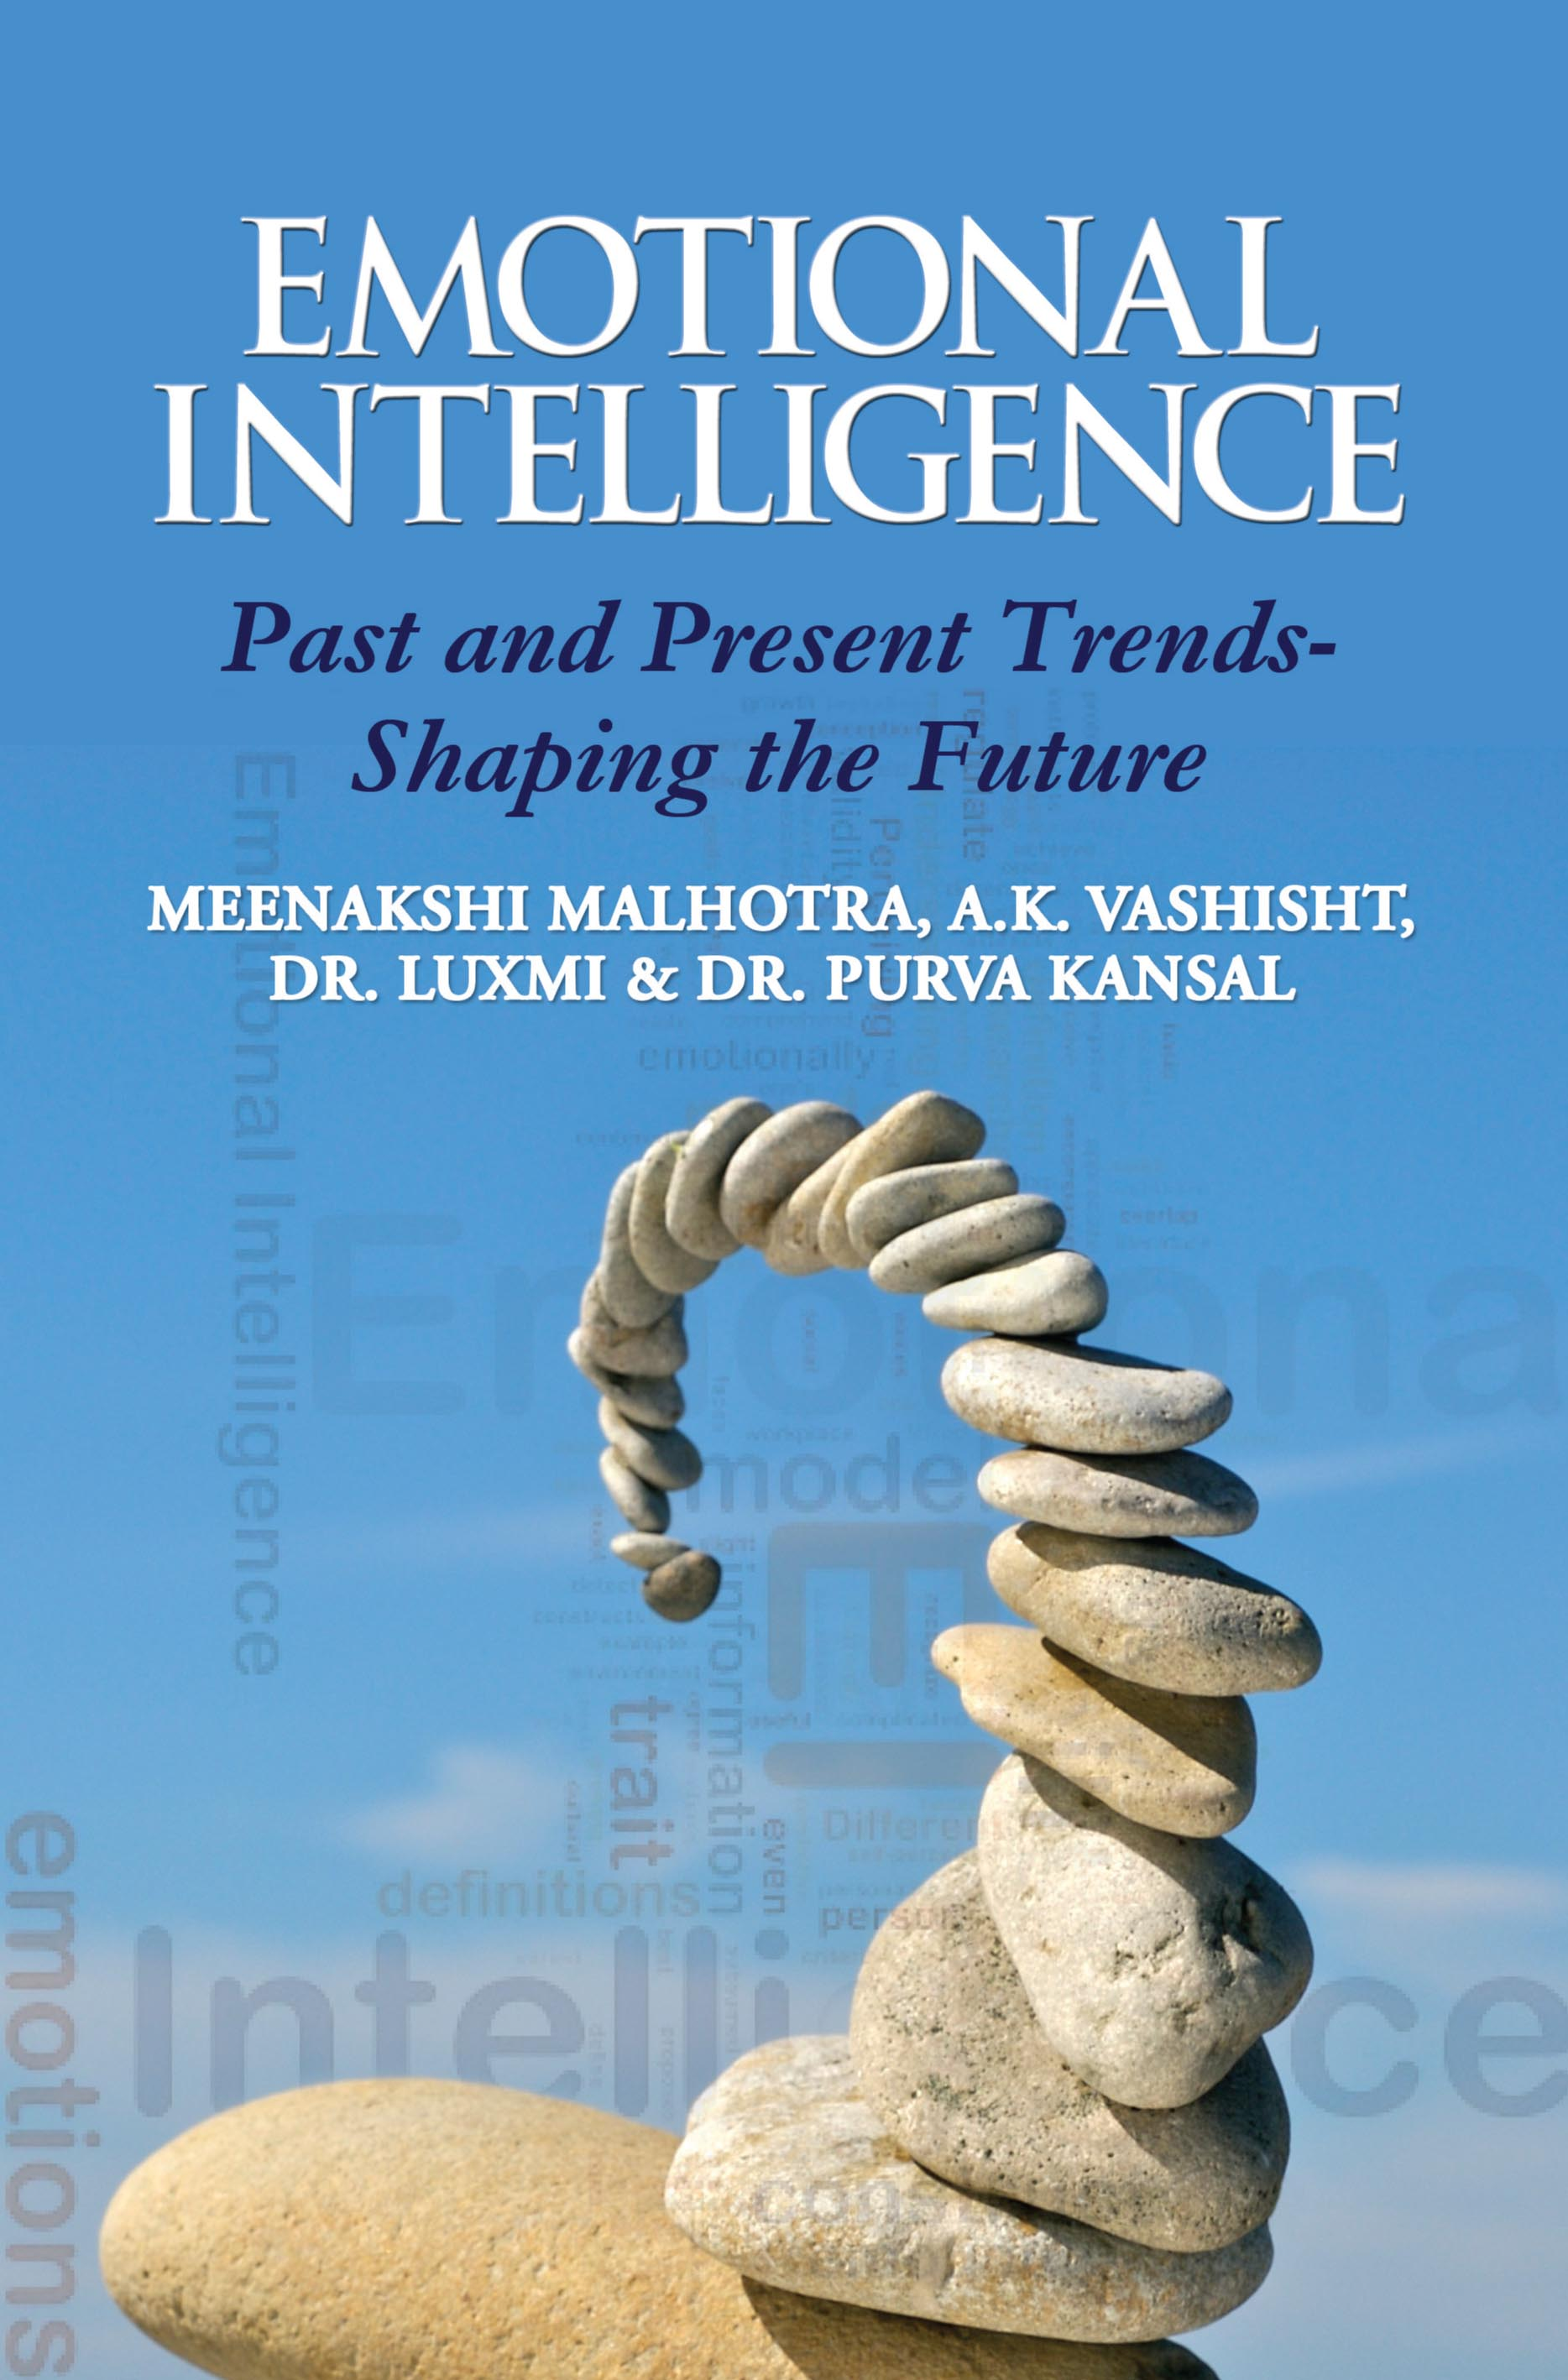 EMOTIONAL INTELLIGENCE: Past and Present Trends-Shaping the Future